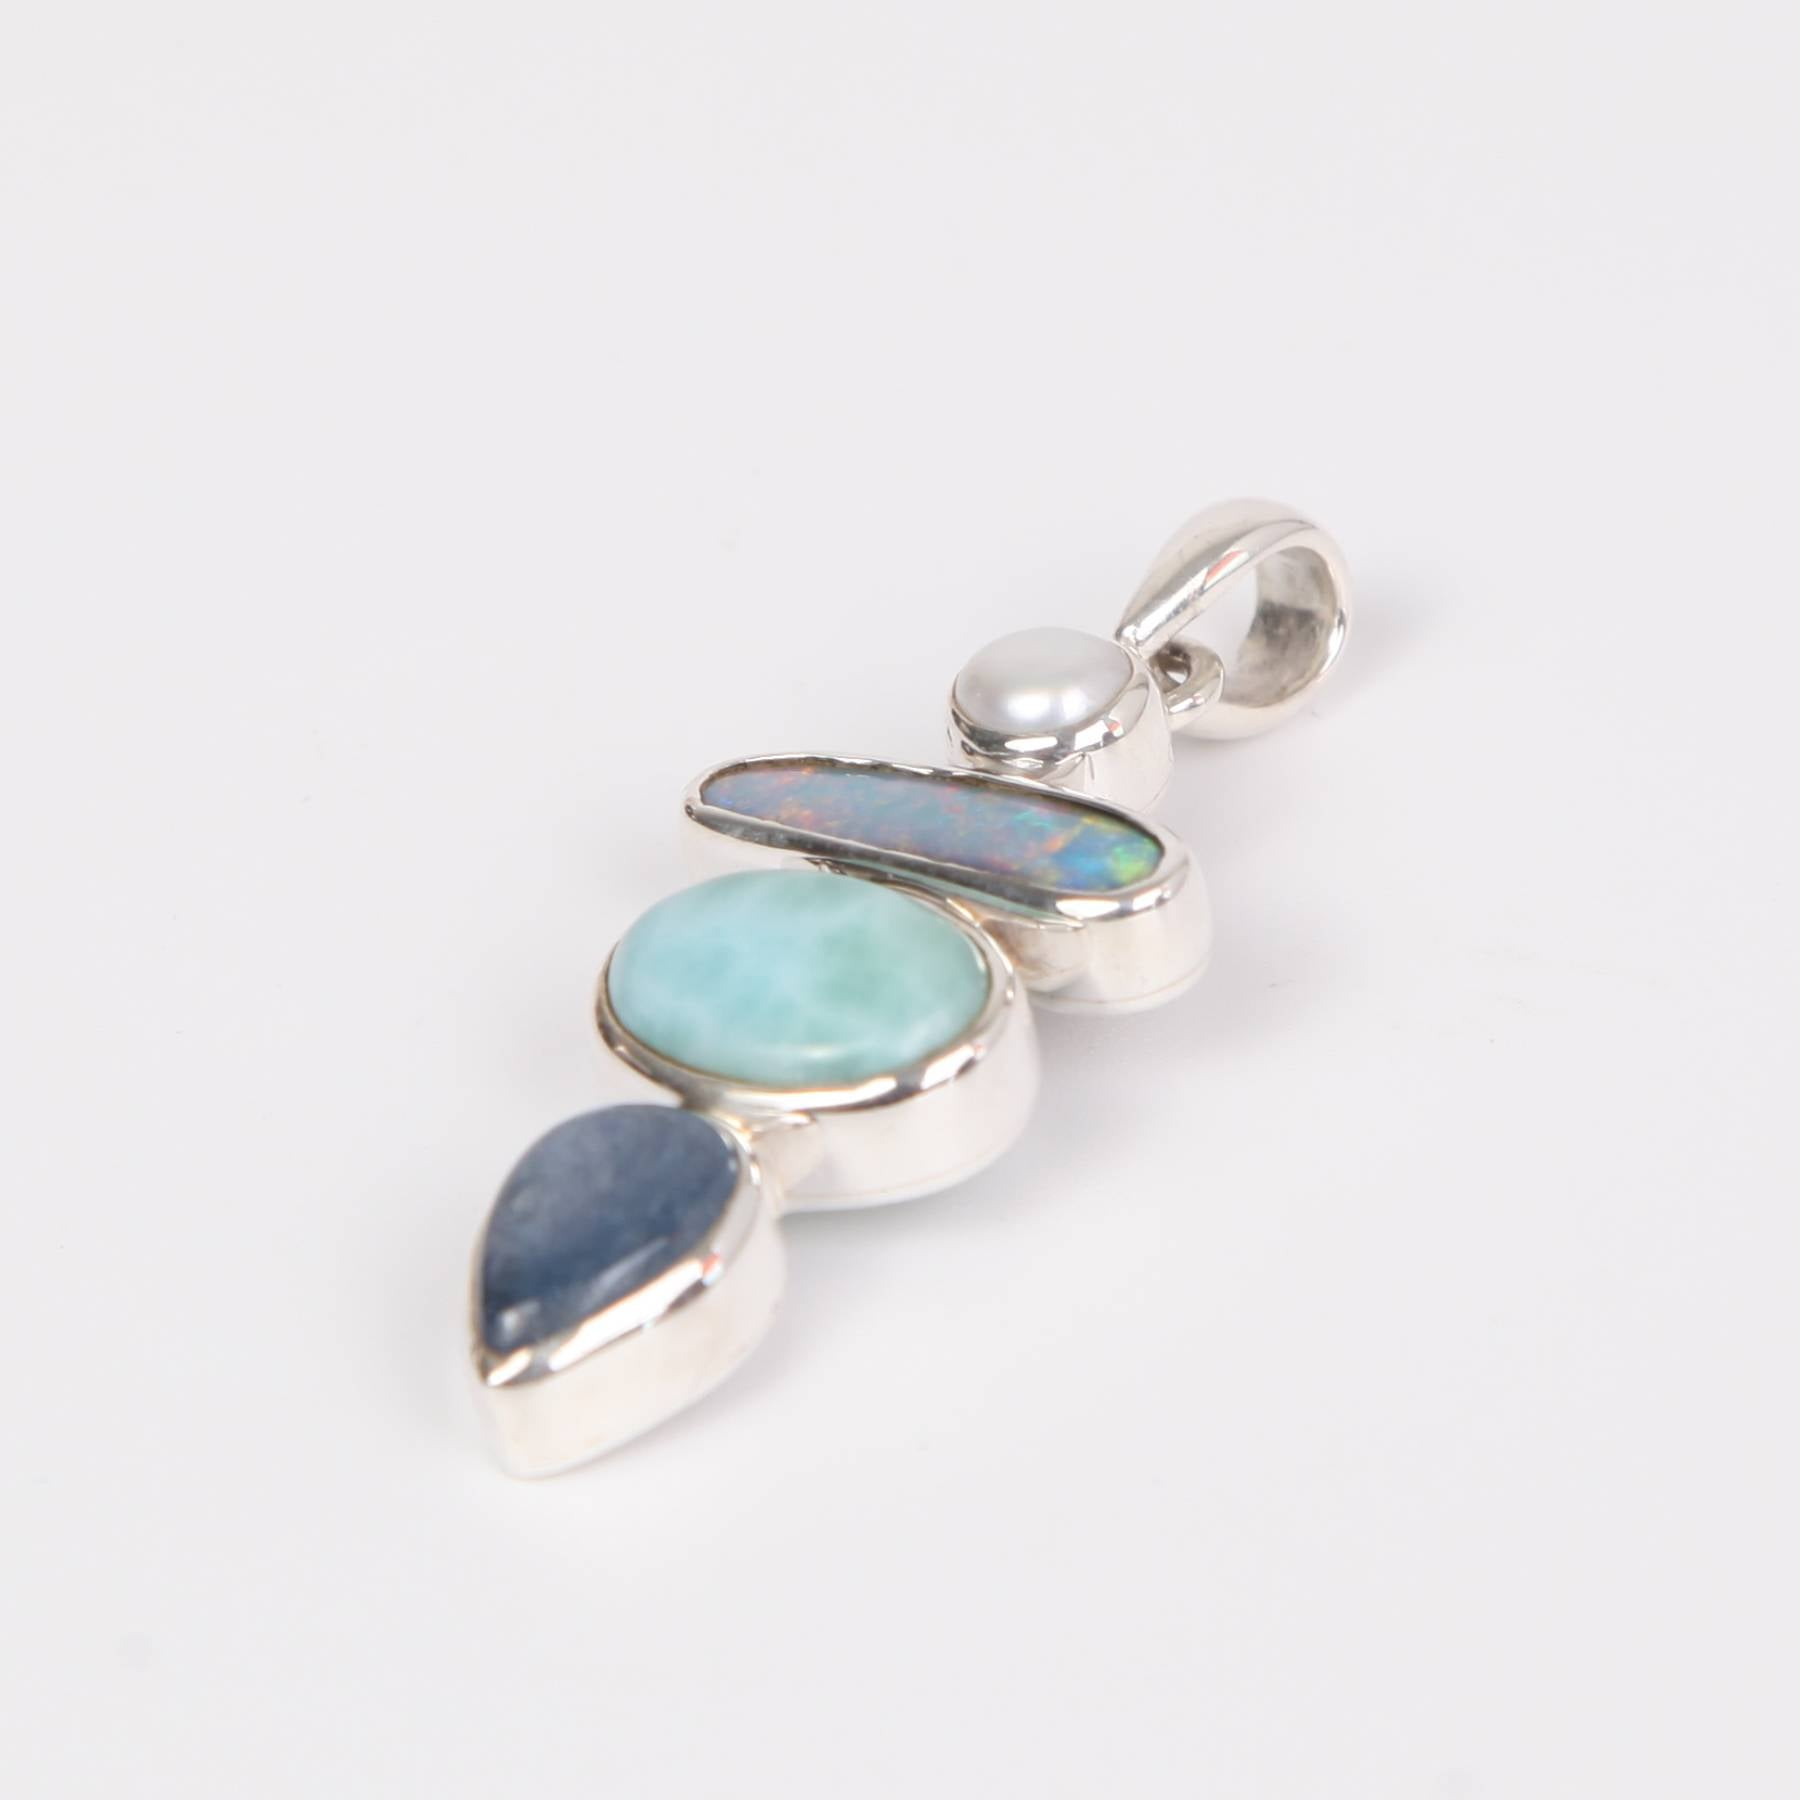 Larimar Stone Sterling Silver Pendant with Australian Opal, Kyanite and Fresh Water Pearl